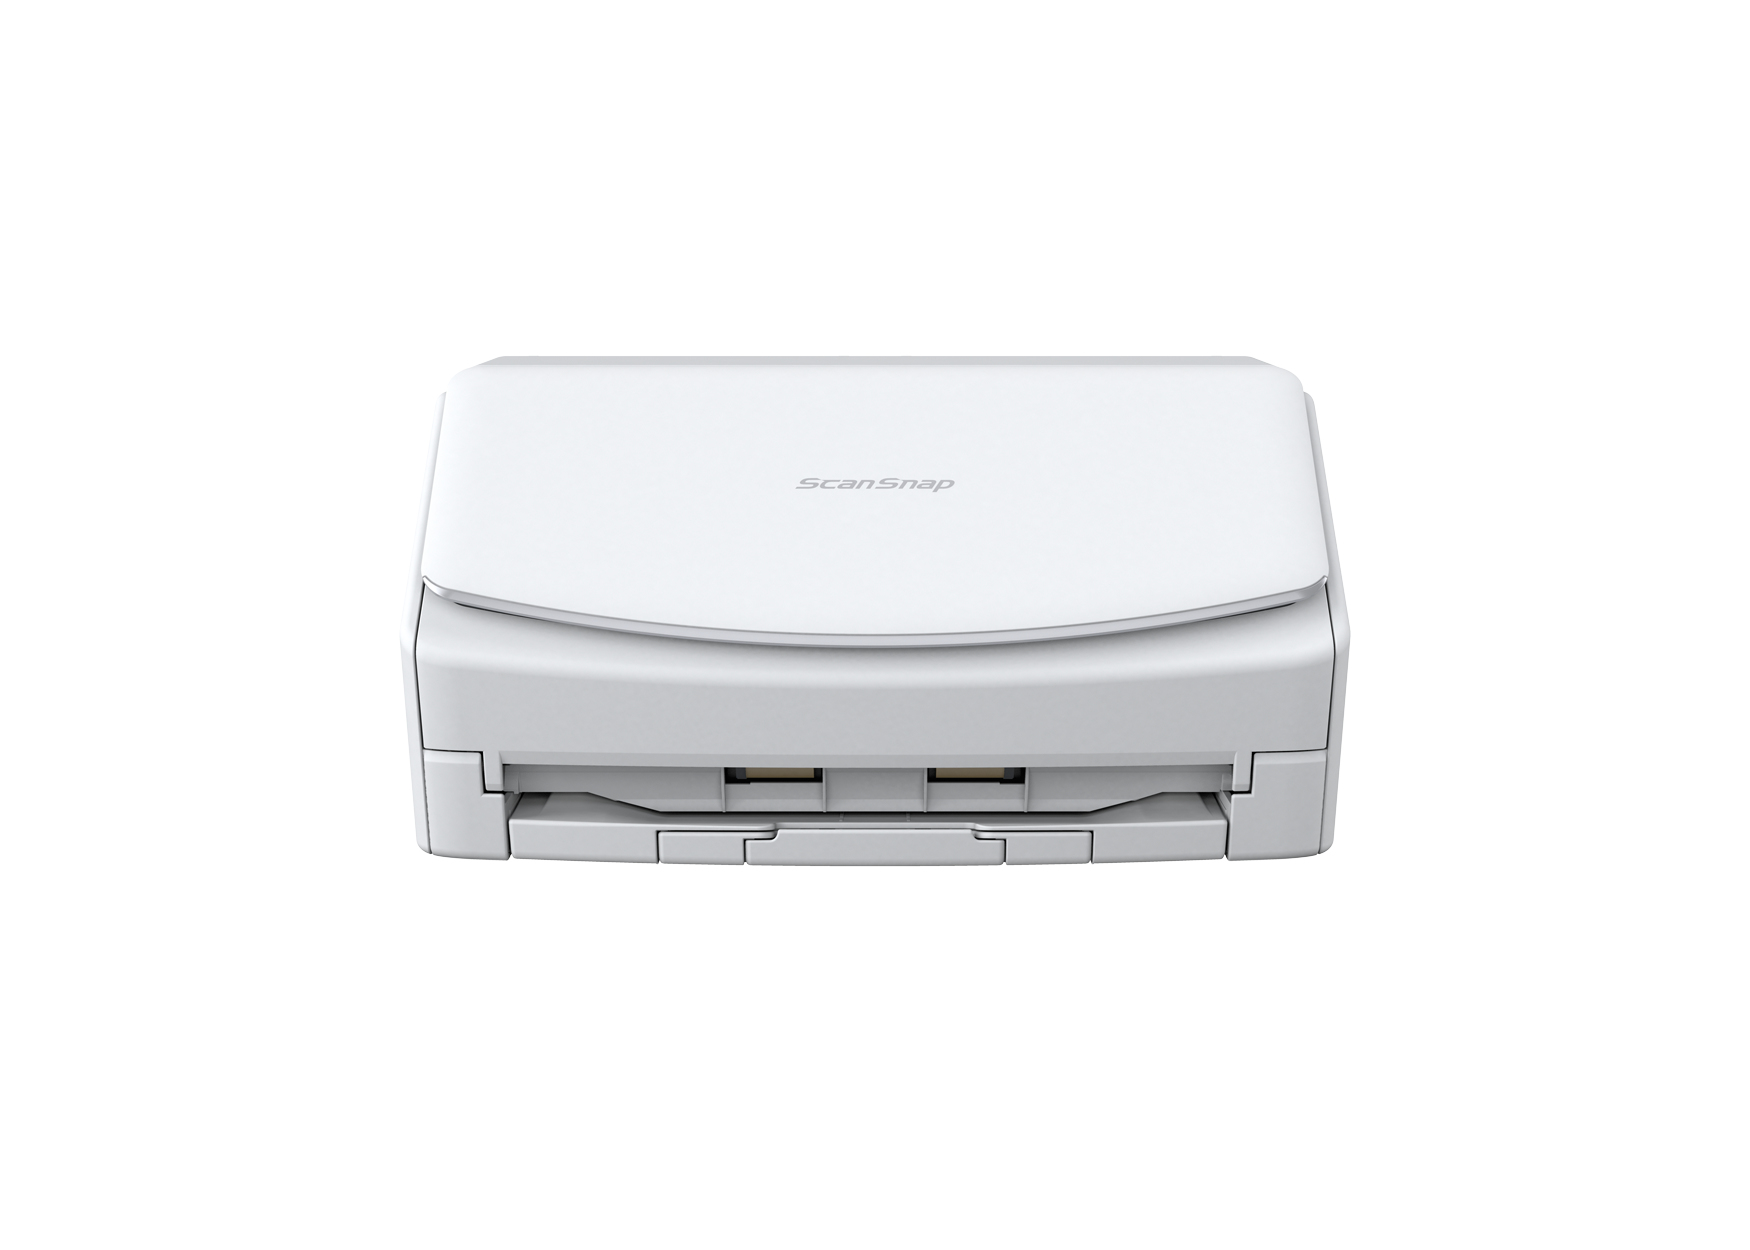 Fujitsu ScanSnap iX1500 ADF + Manual feed scanner 600 x 600DPI A4 White PA03770-B001